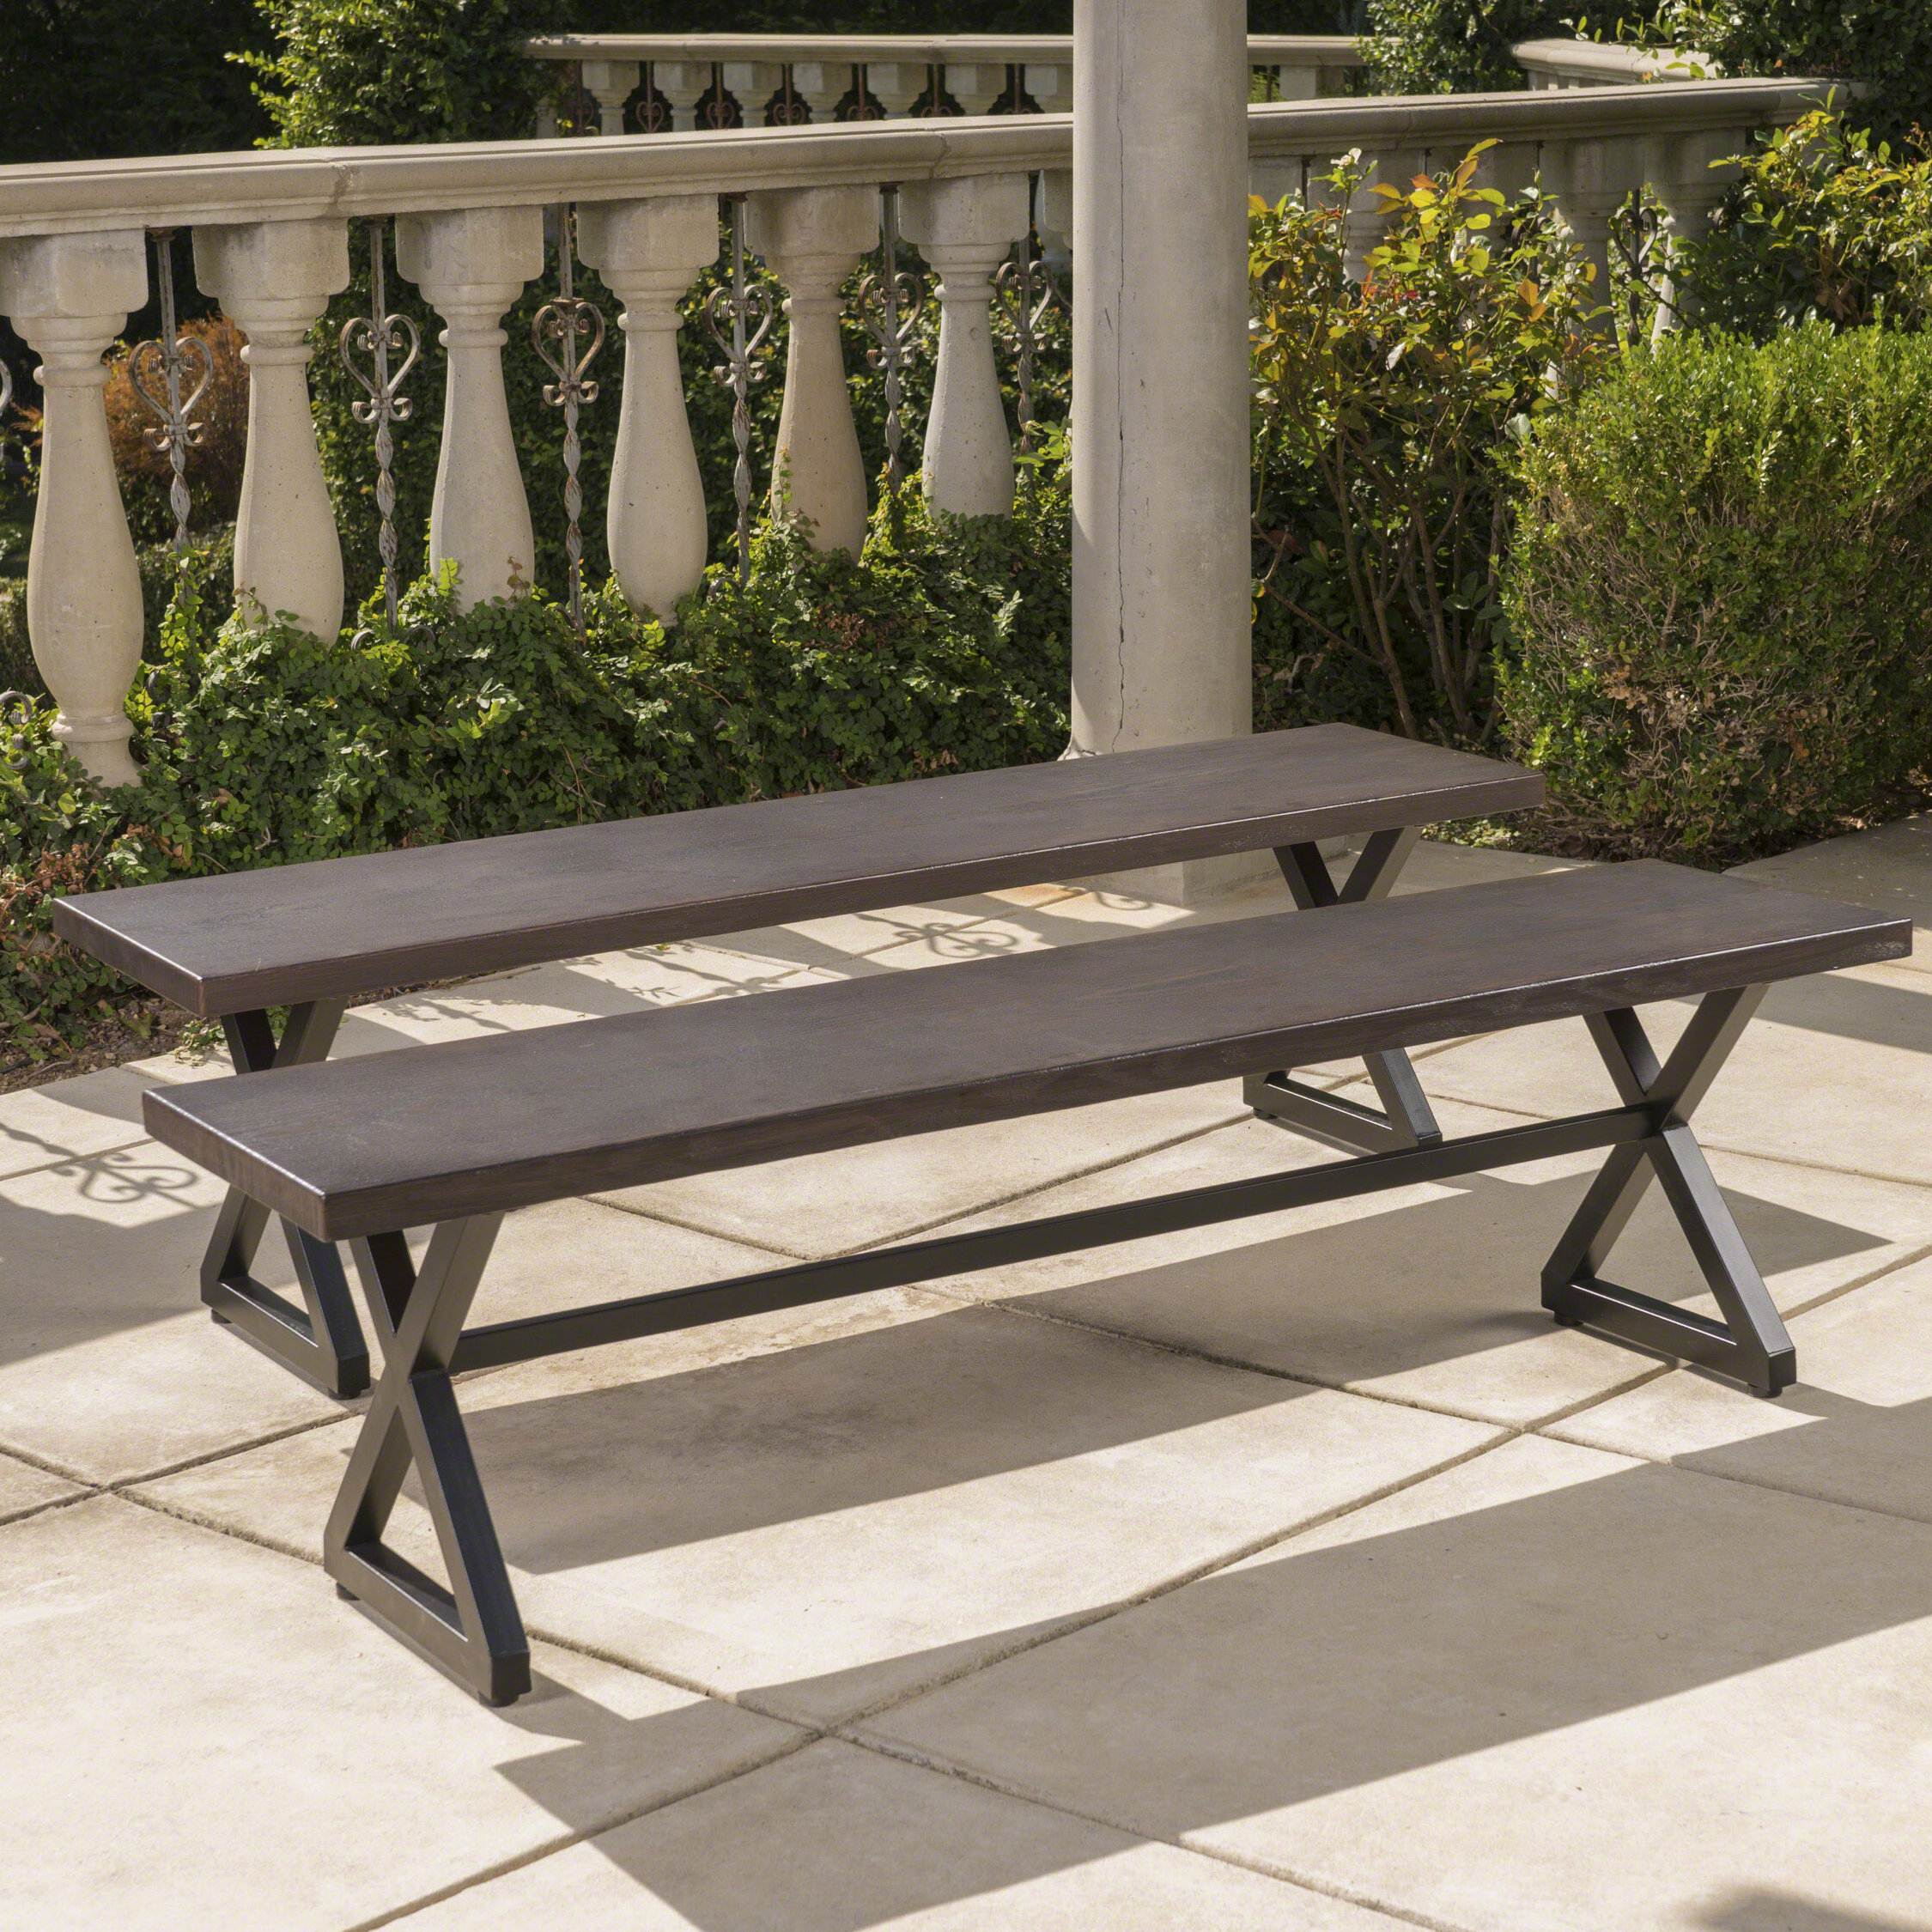 Lal Outdoor Aluminum Picnic Bench Intended For Guyapi Garden Benches (View 17 of 25)